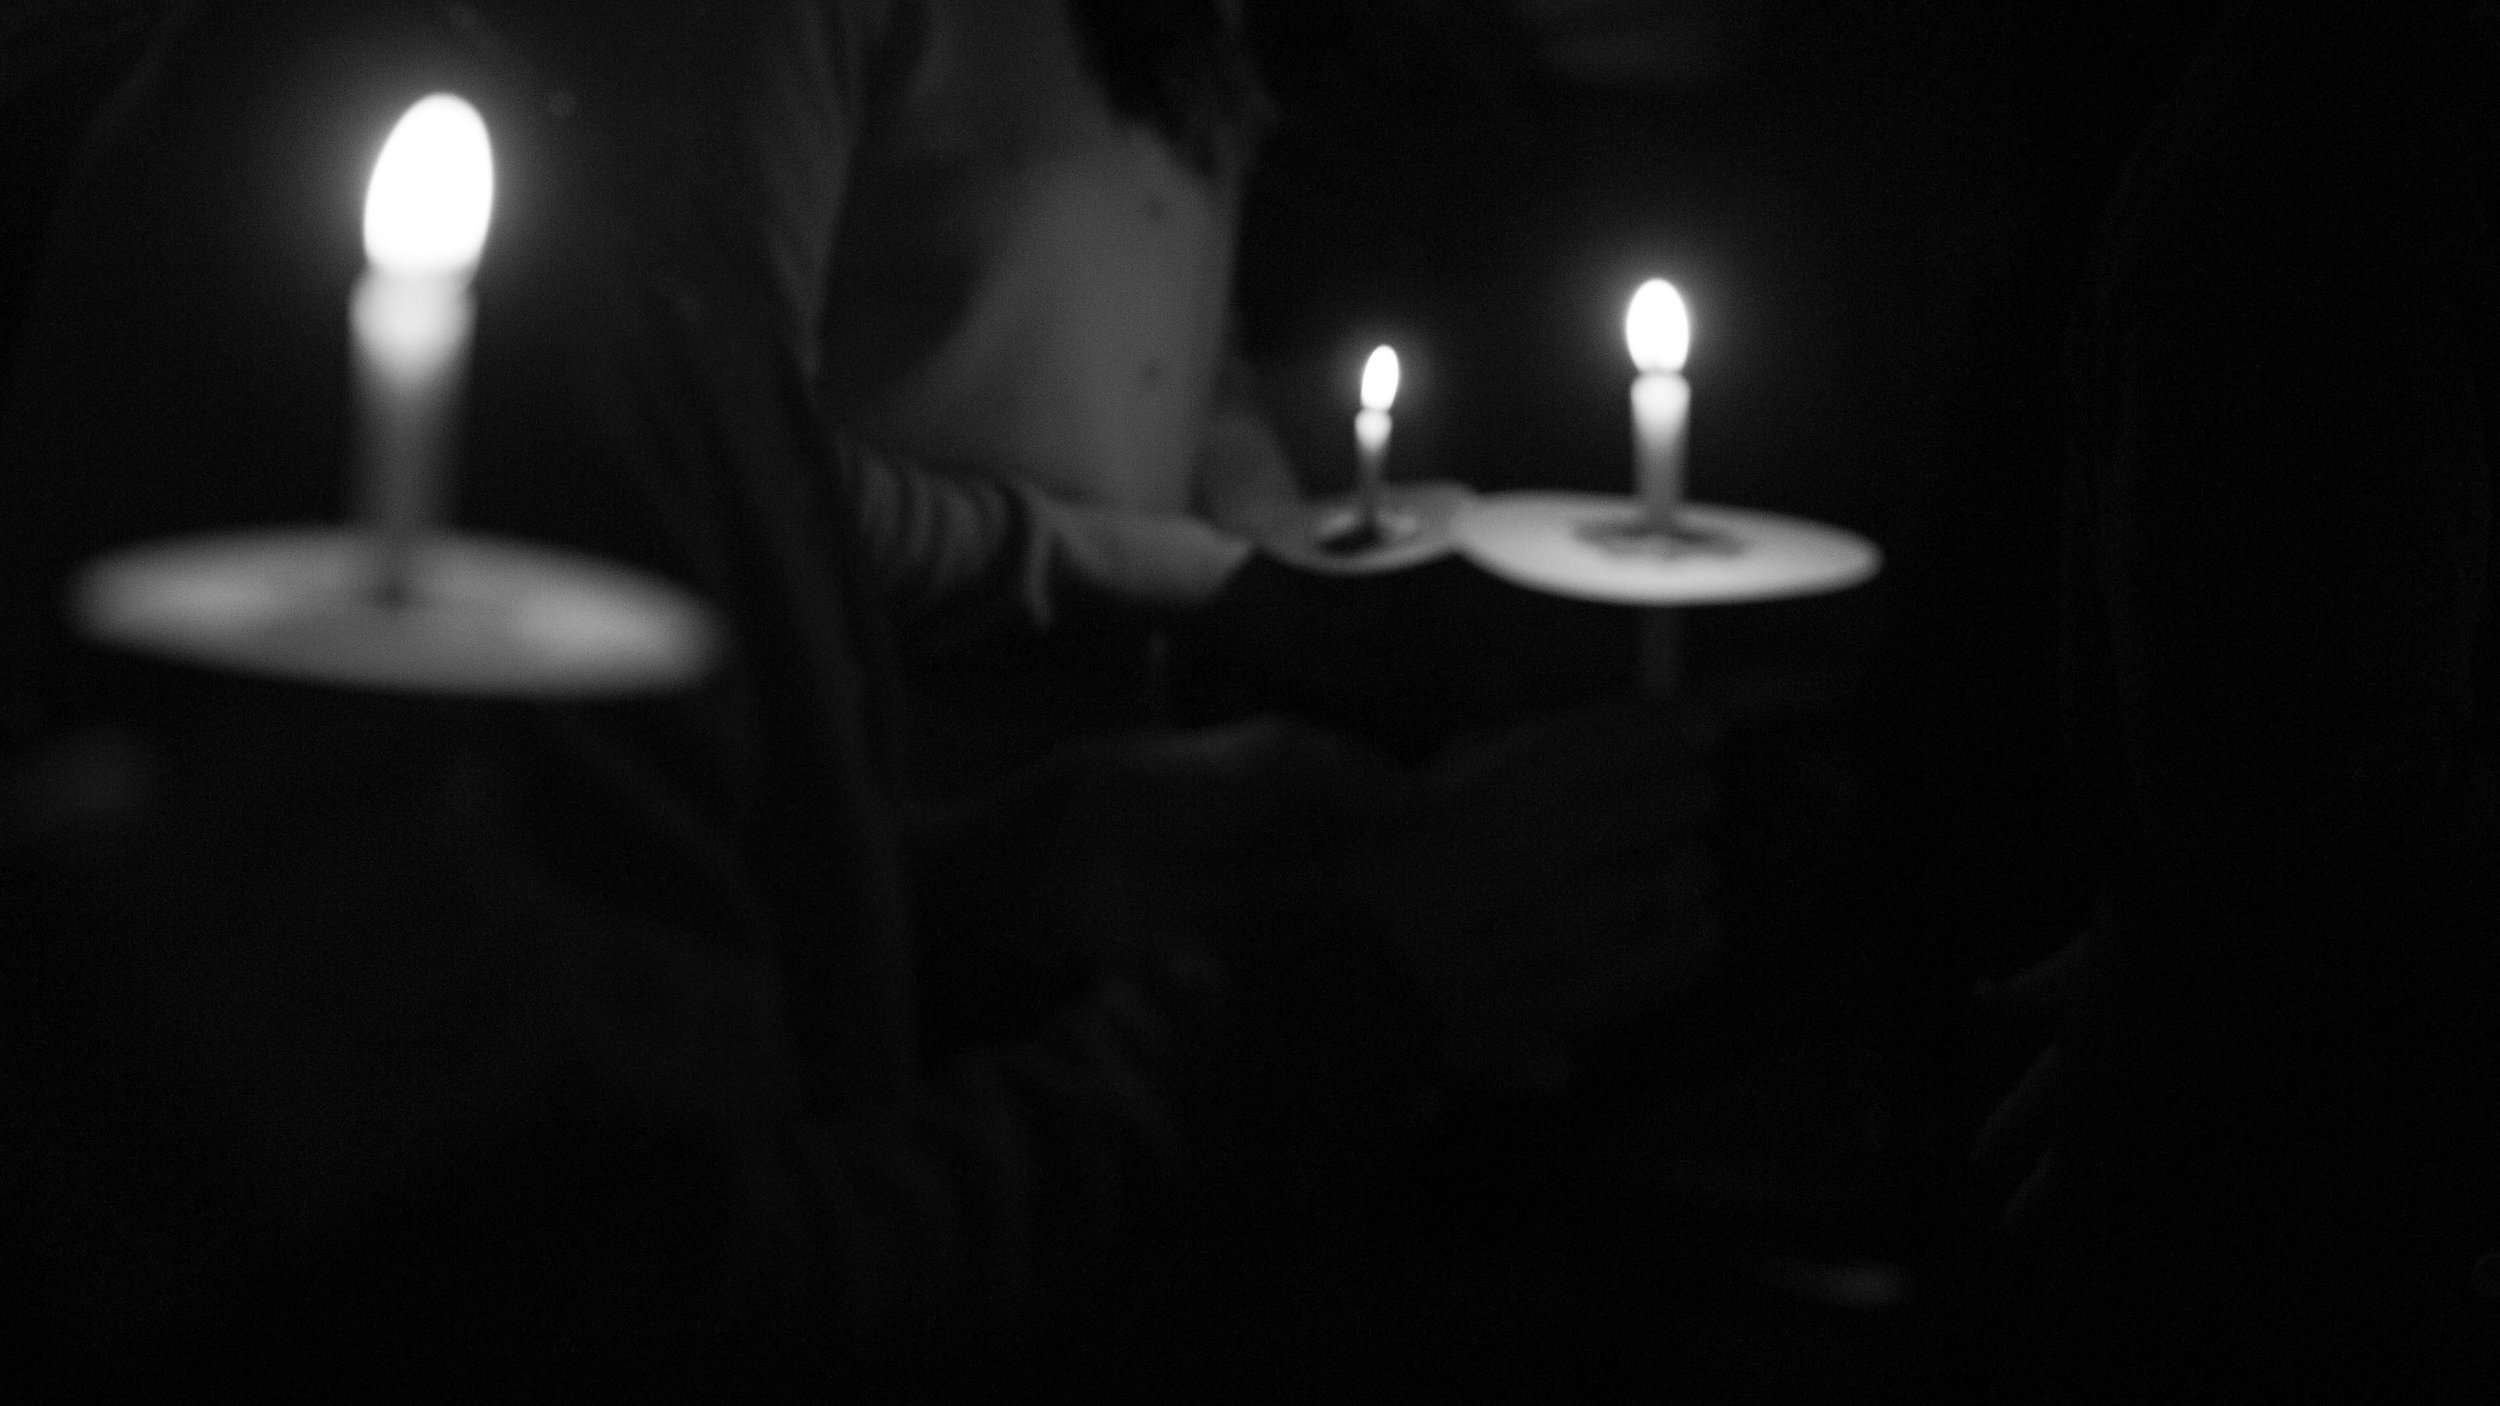 141224Candle light021.jpg